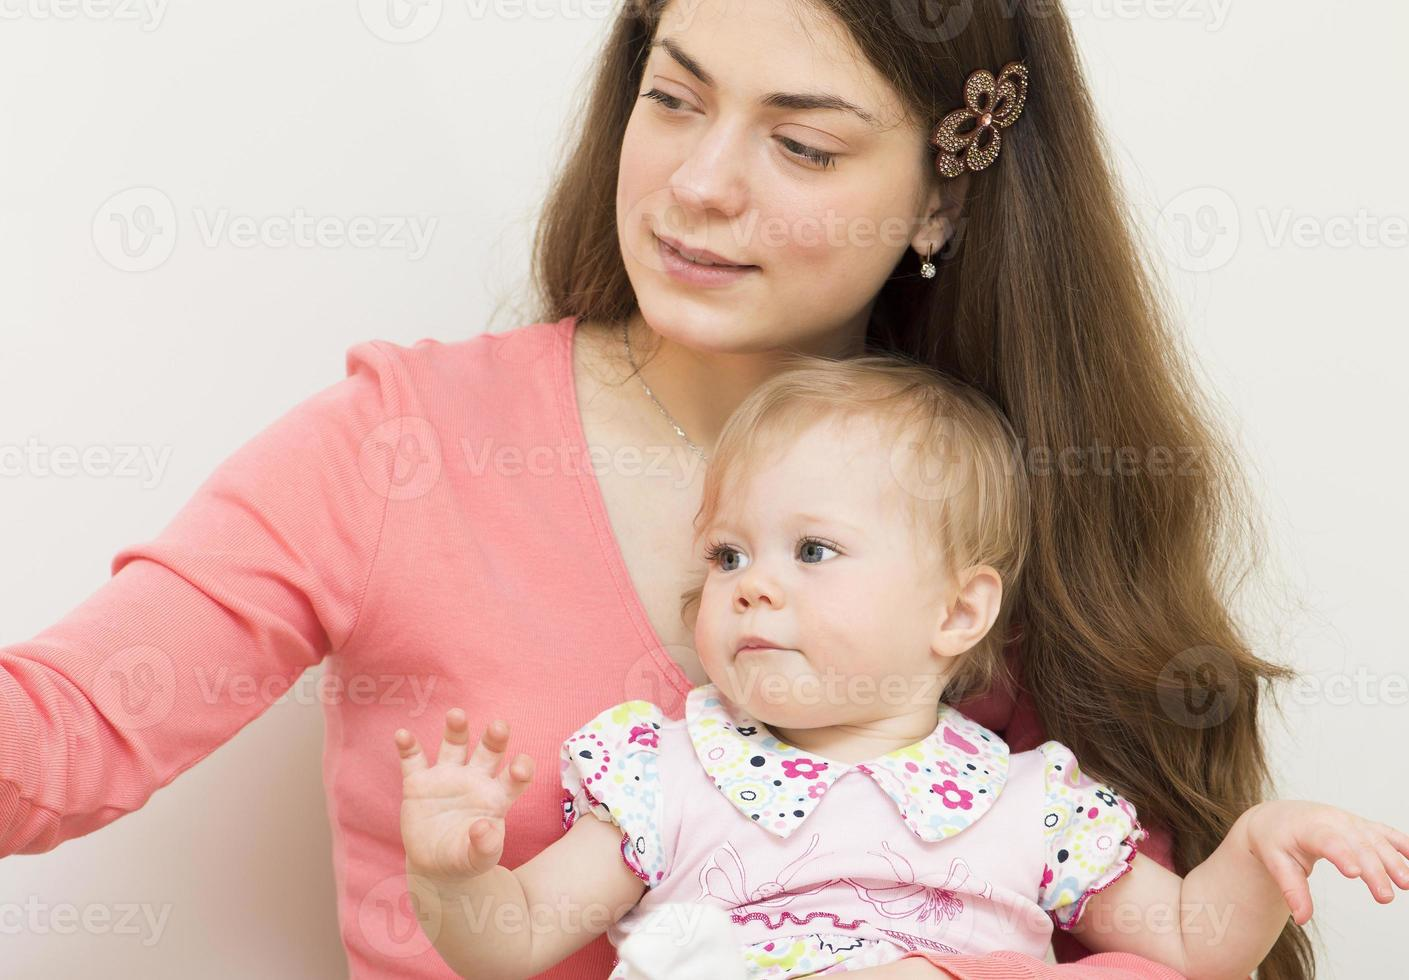 Young mother with the baby of 11 months old. photo